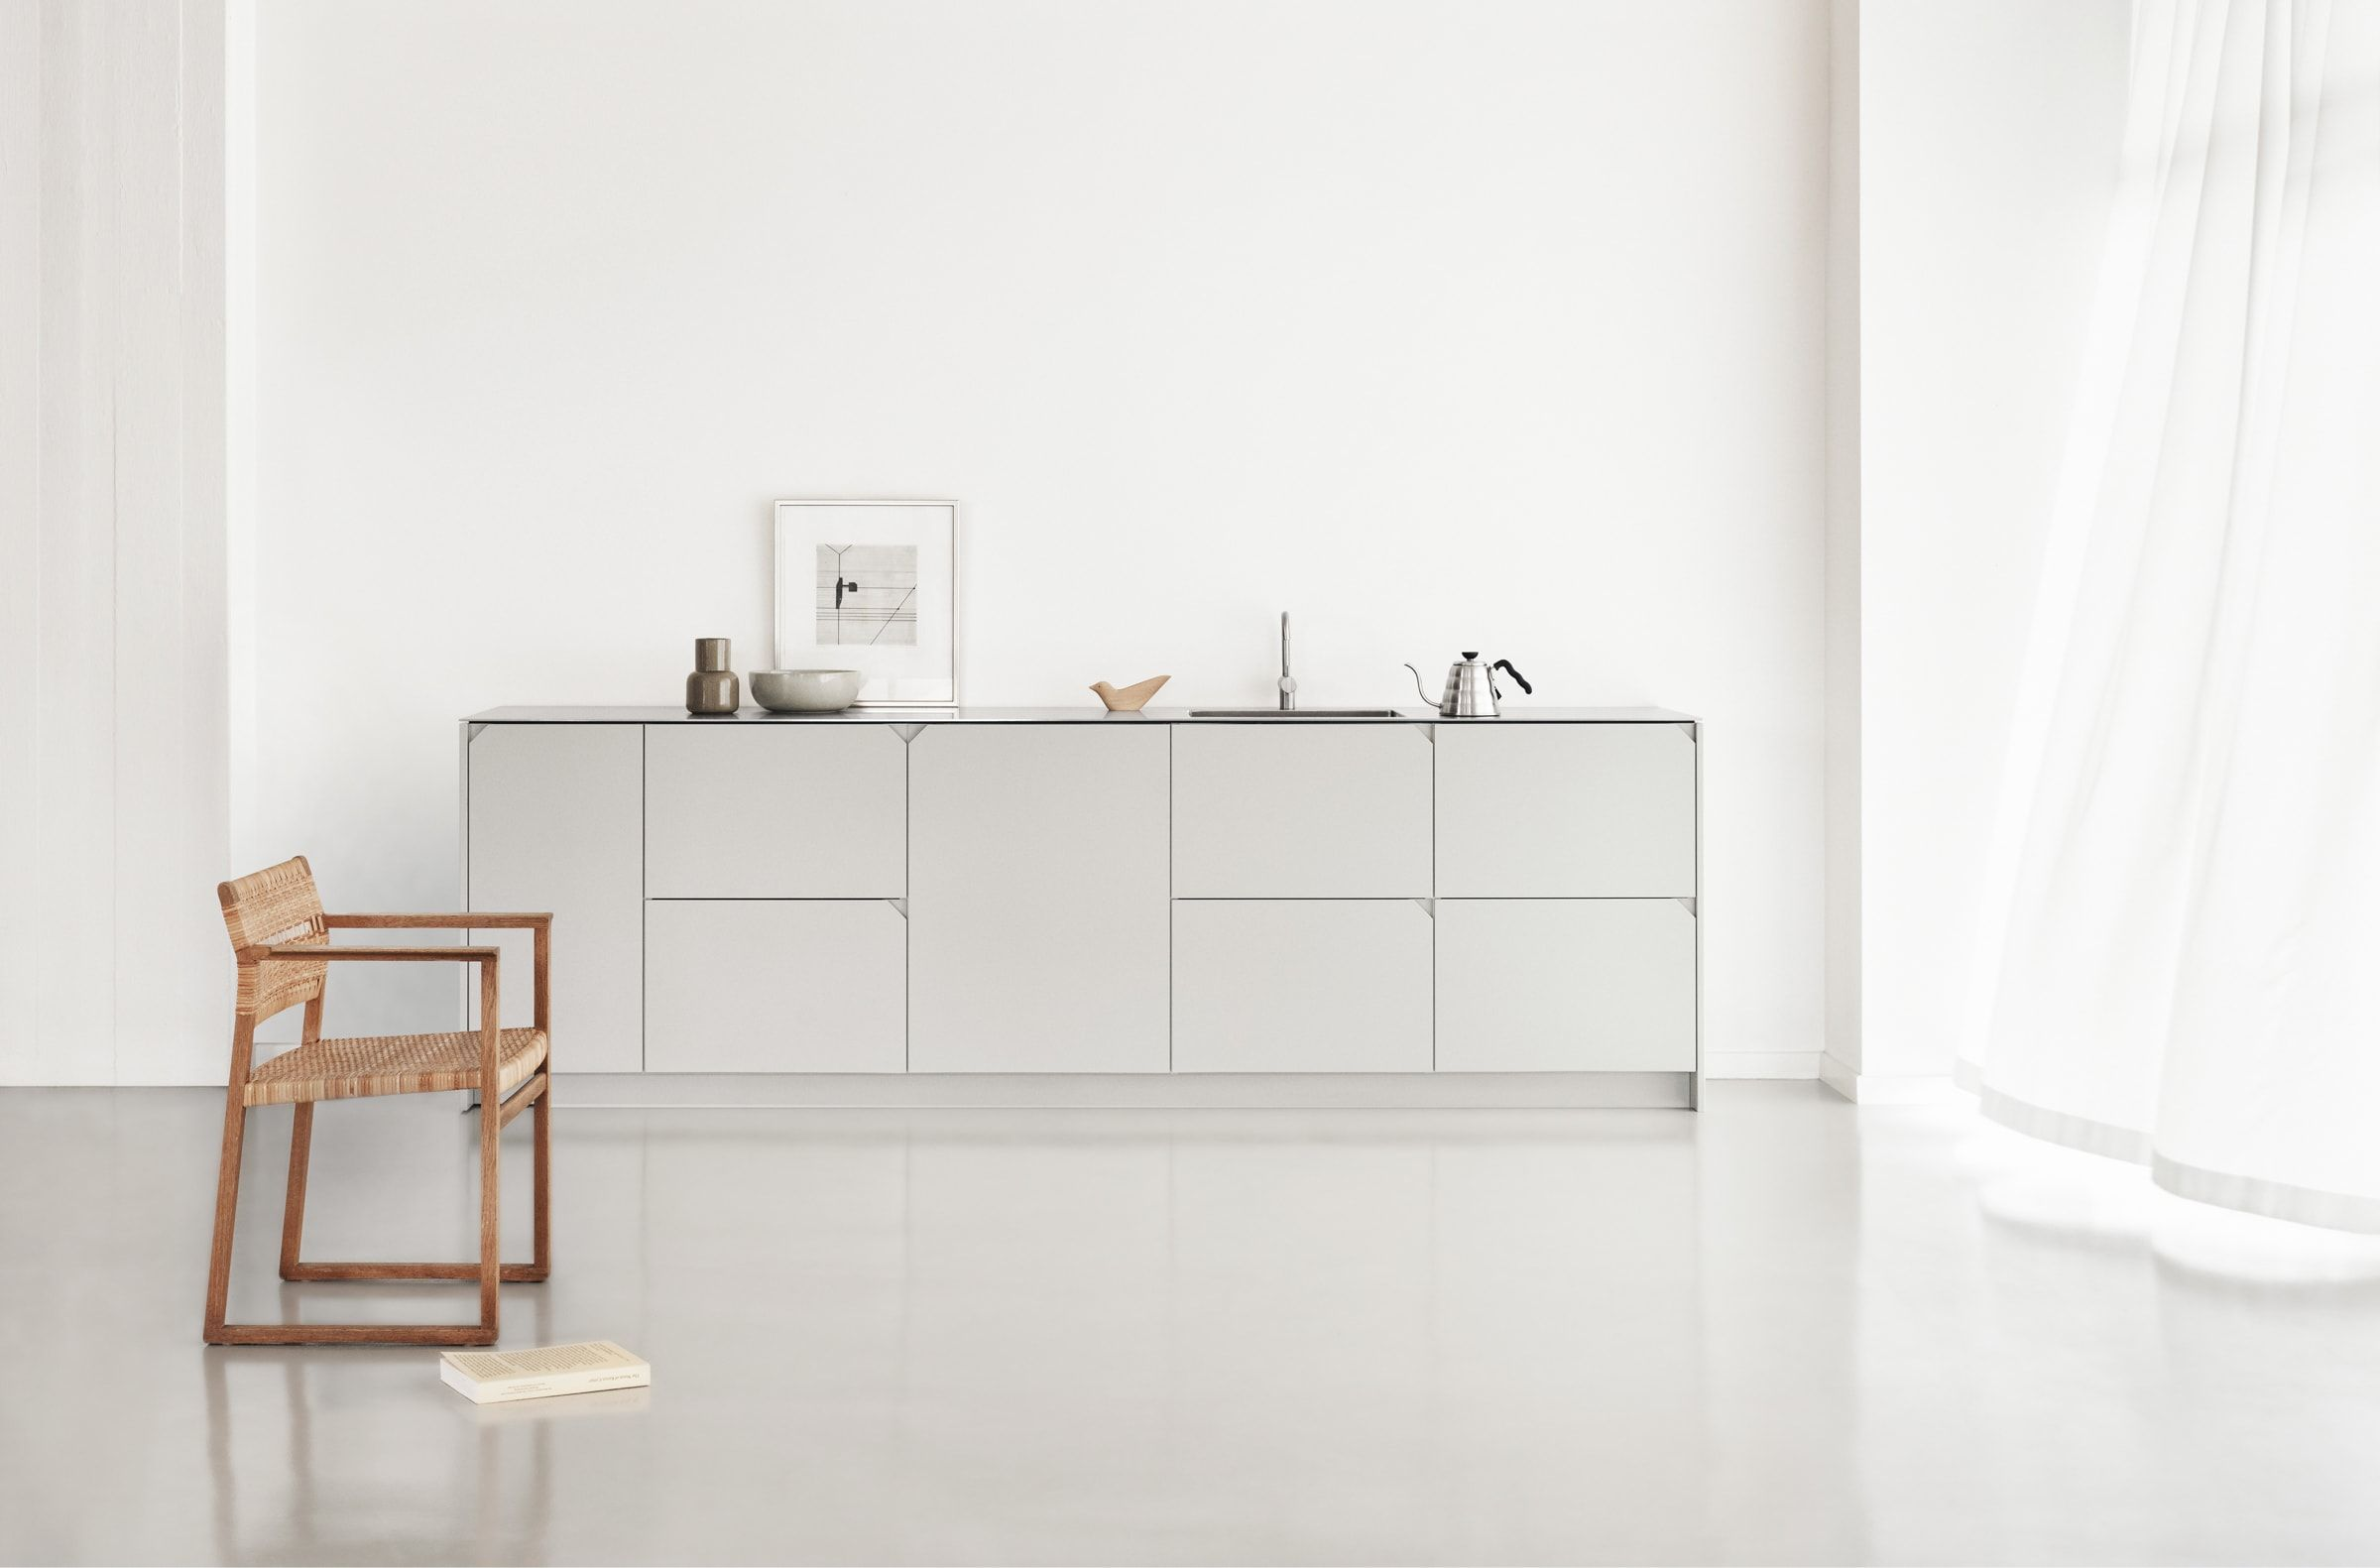 Degree By Cecilie Manz Is A Classic Aesthetics And Subtly Graphic Details Which Creates A Comfortably Mode Ikea New Kitchen Ikea Kitchen Interior Design Degree